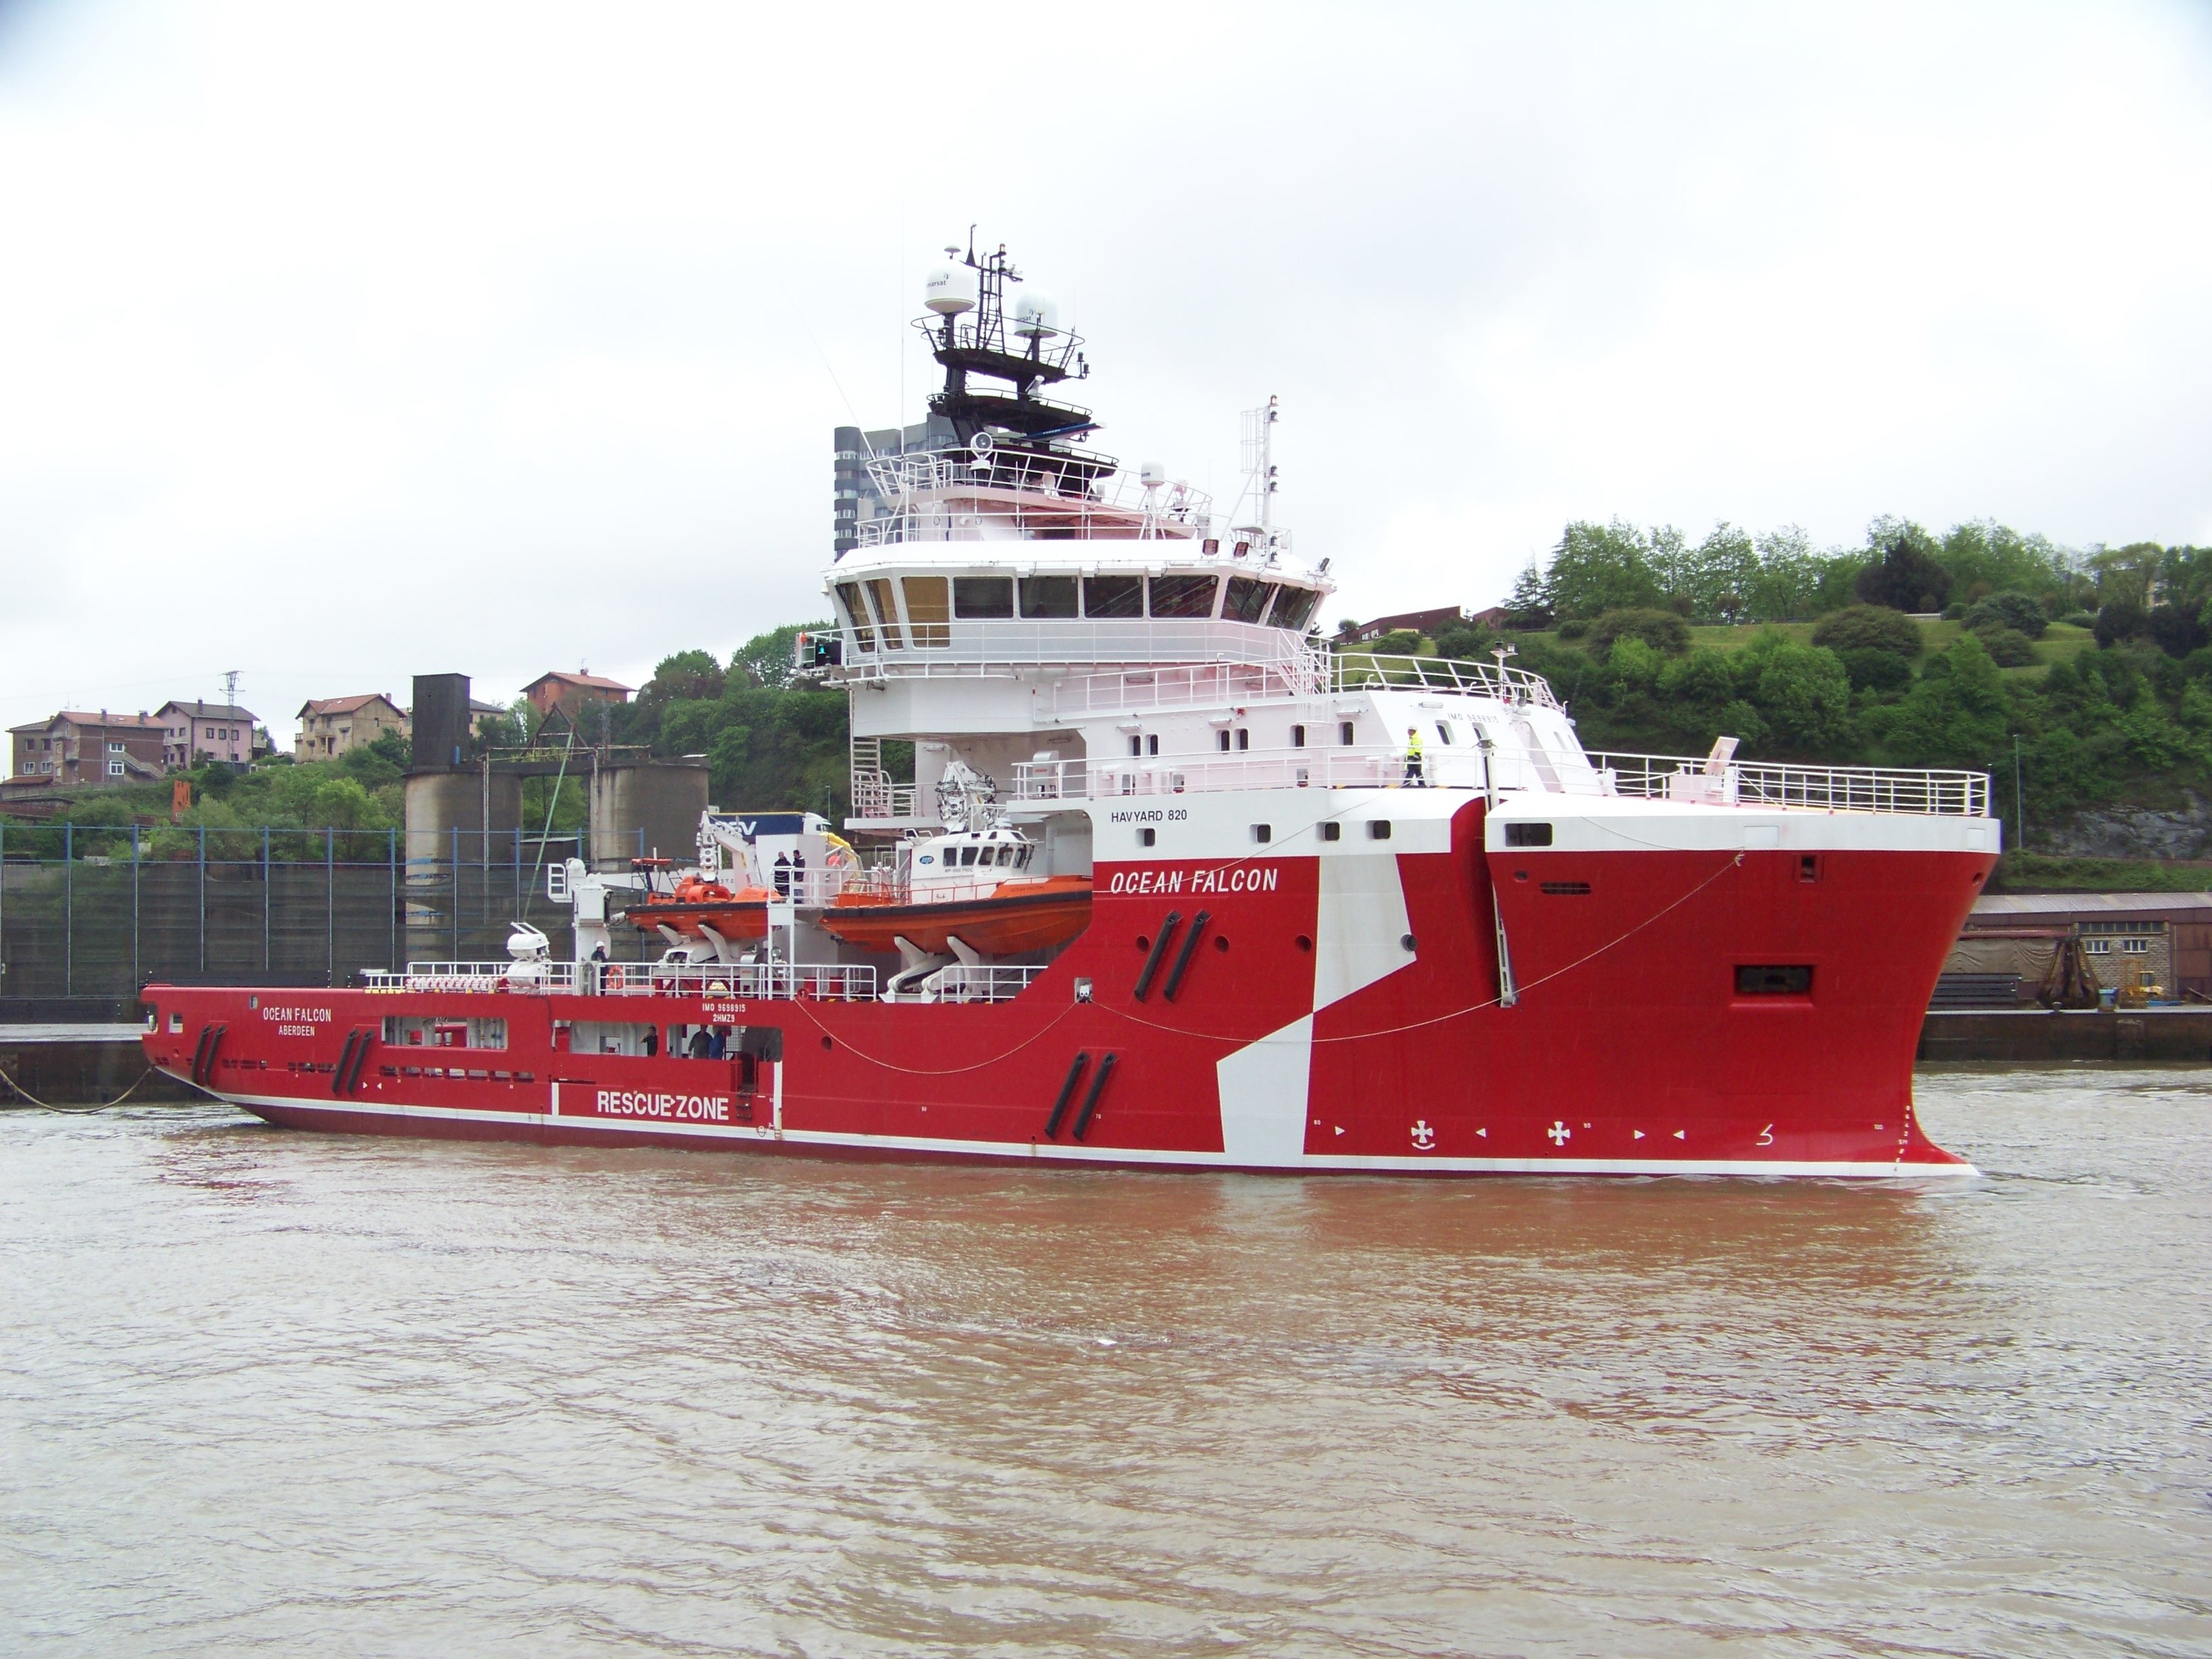 Ocean Falcon, the latest vessel to be launched as part of Atlantic Offshore Rescue's 300 million fleet modernisation programme